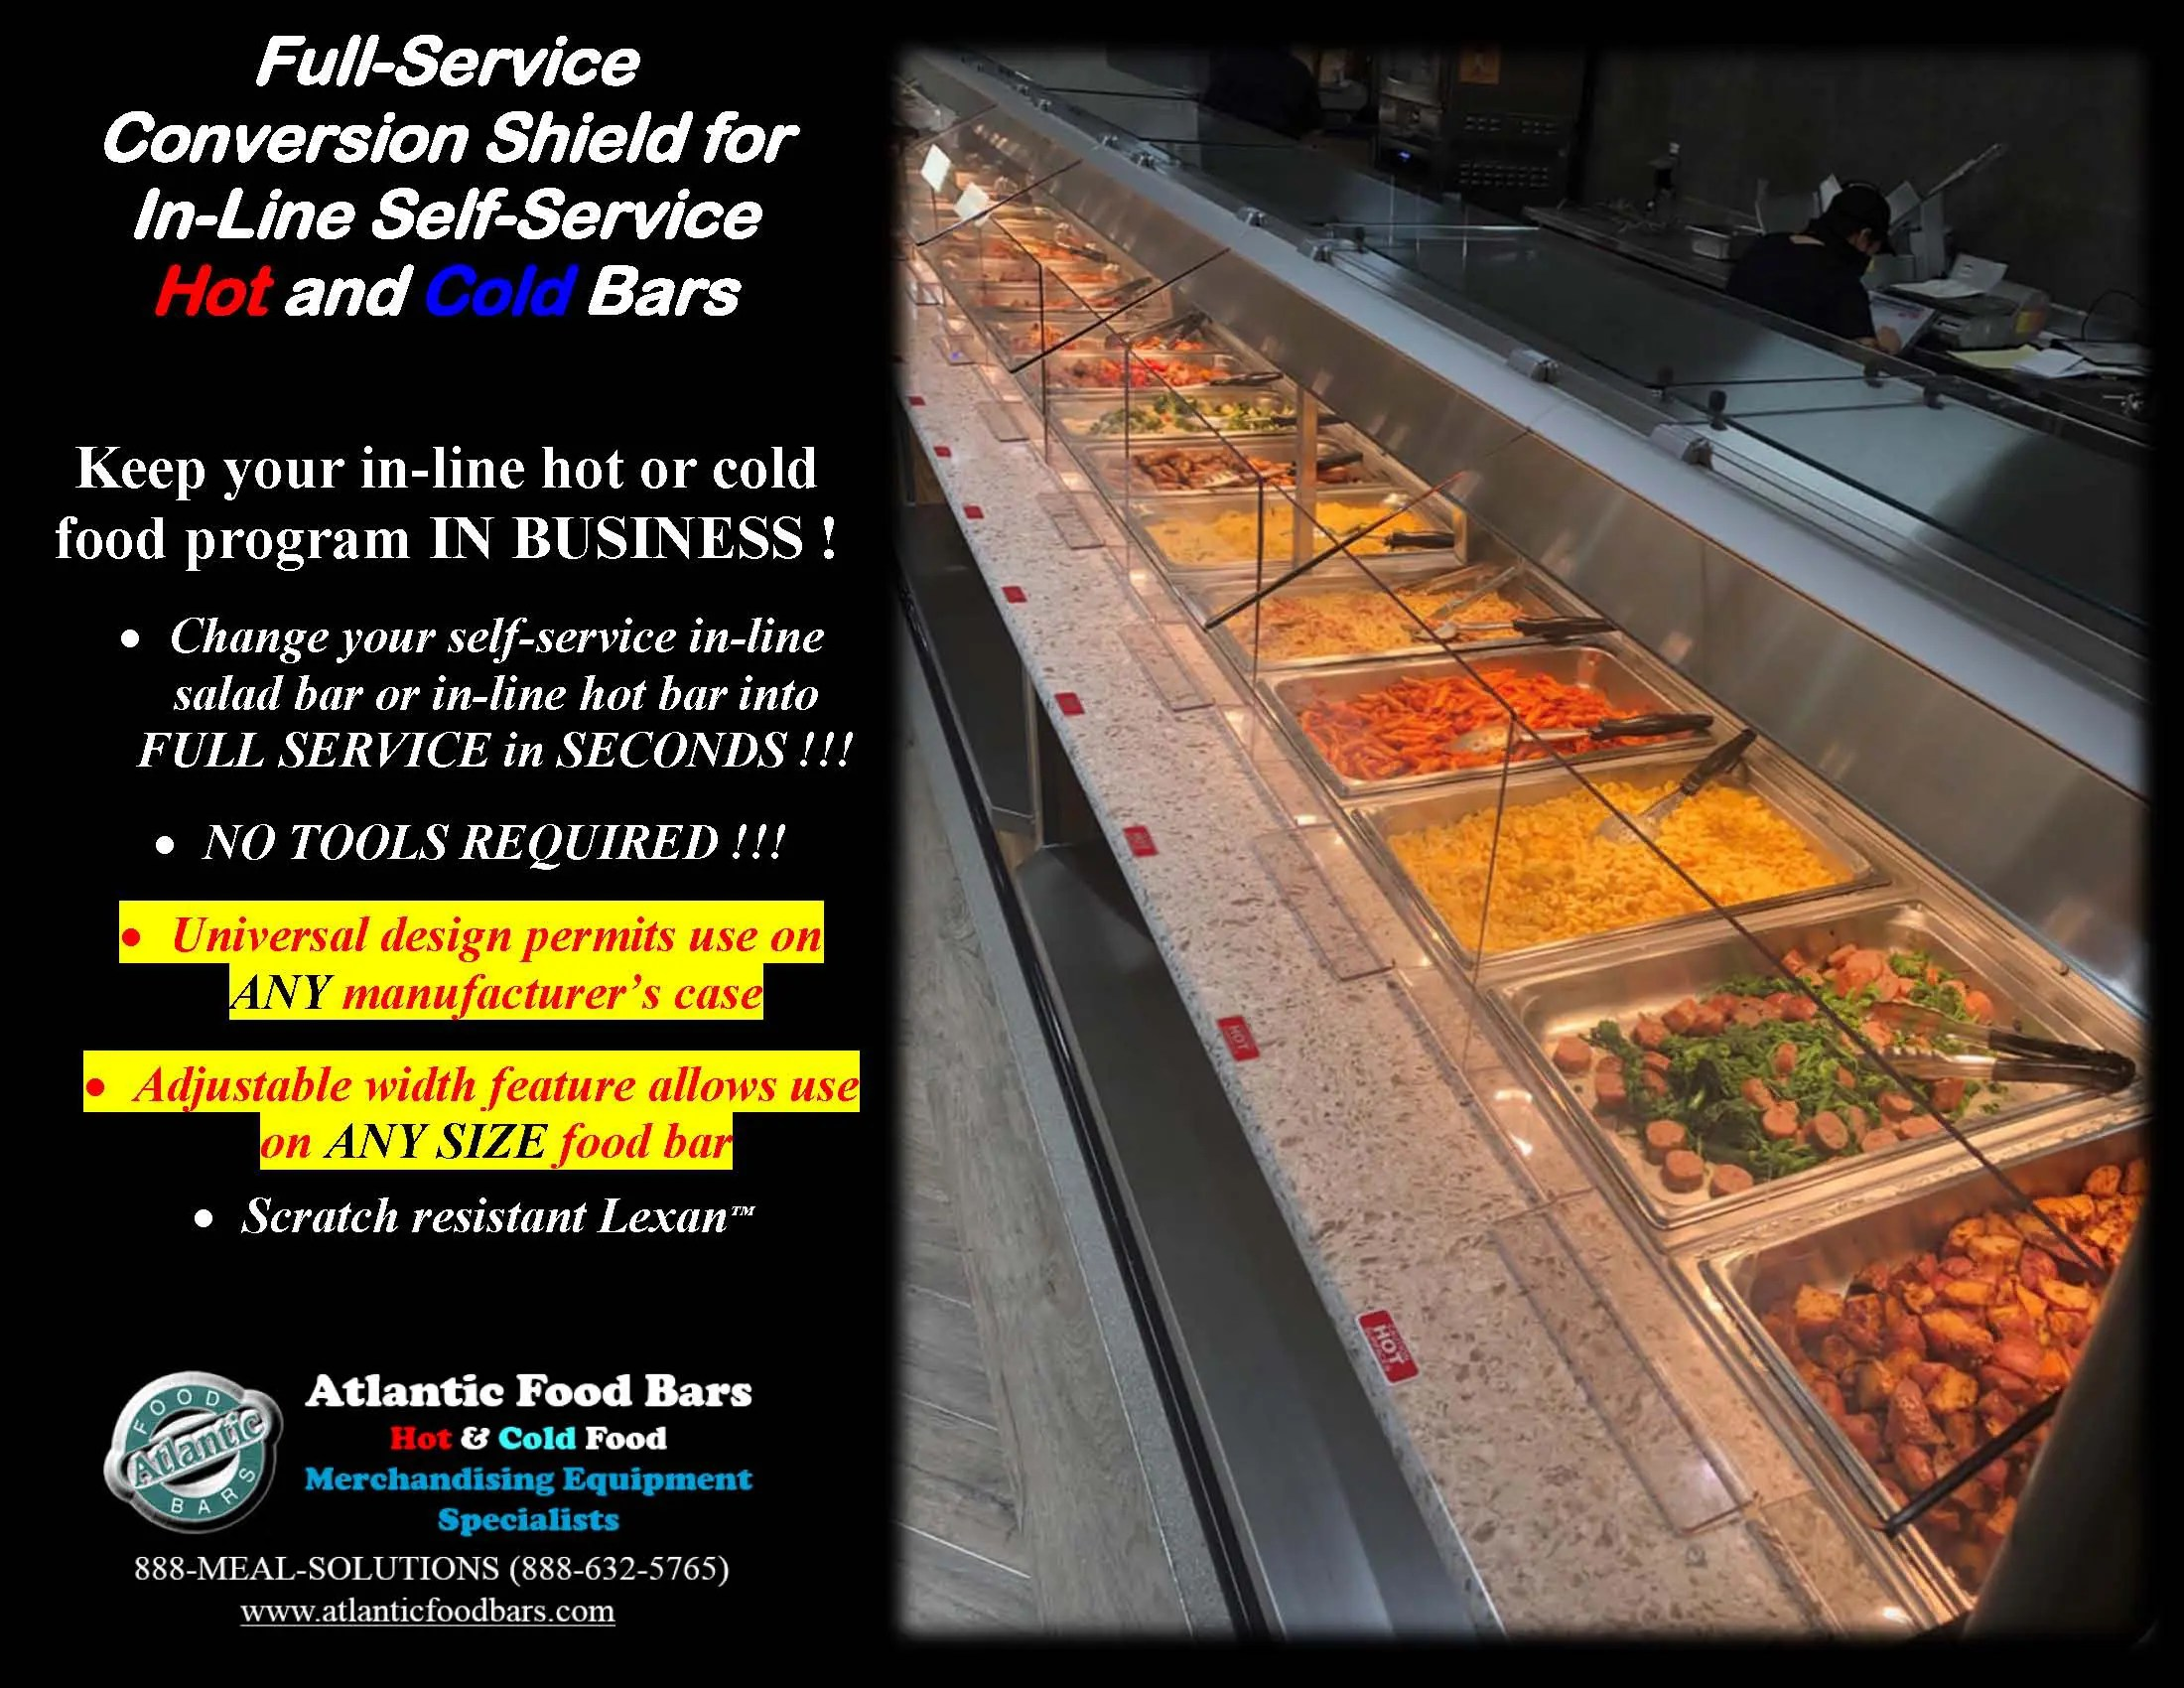 Atlantic Food Bars - The Shield - Lexan Full Service Conversion Kit for In-Line Cold and Hot Food Bars - AST_Page_1